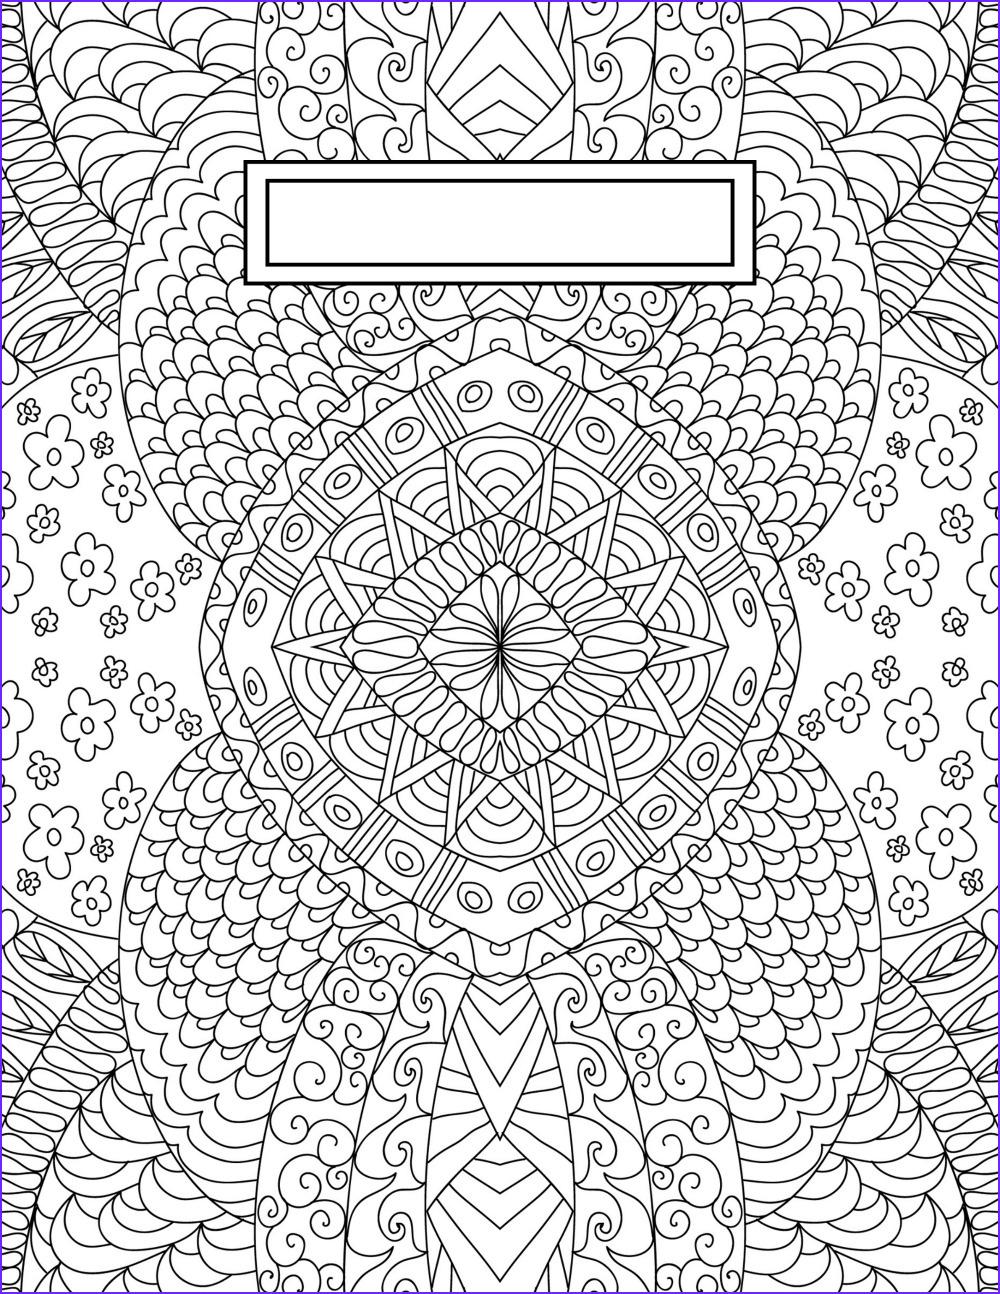 Coloring Books Beautiful Collection Back to School Binder Cover Adult Coloring Pages